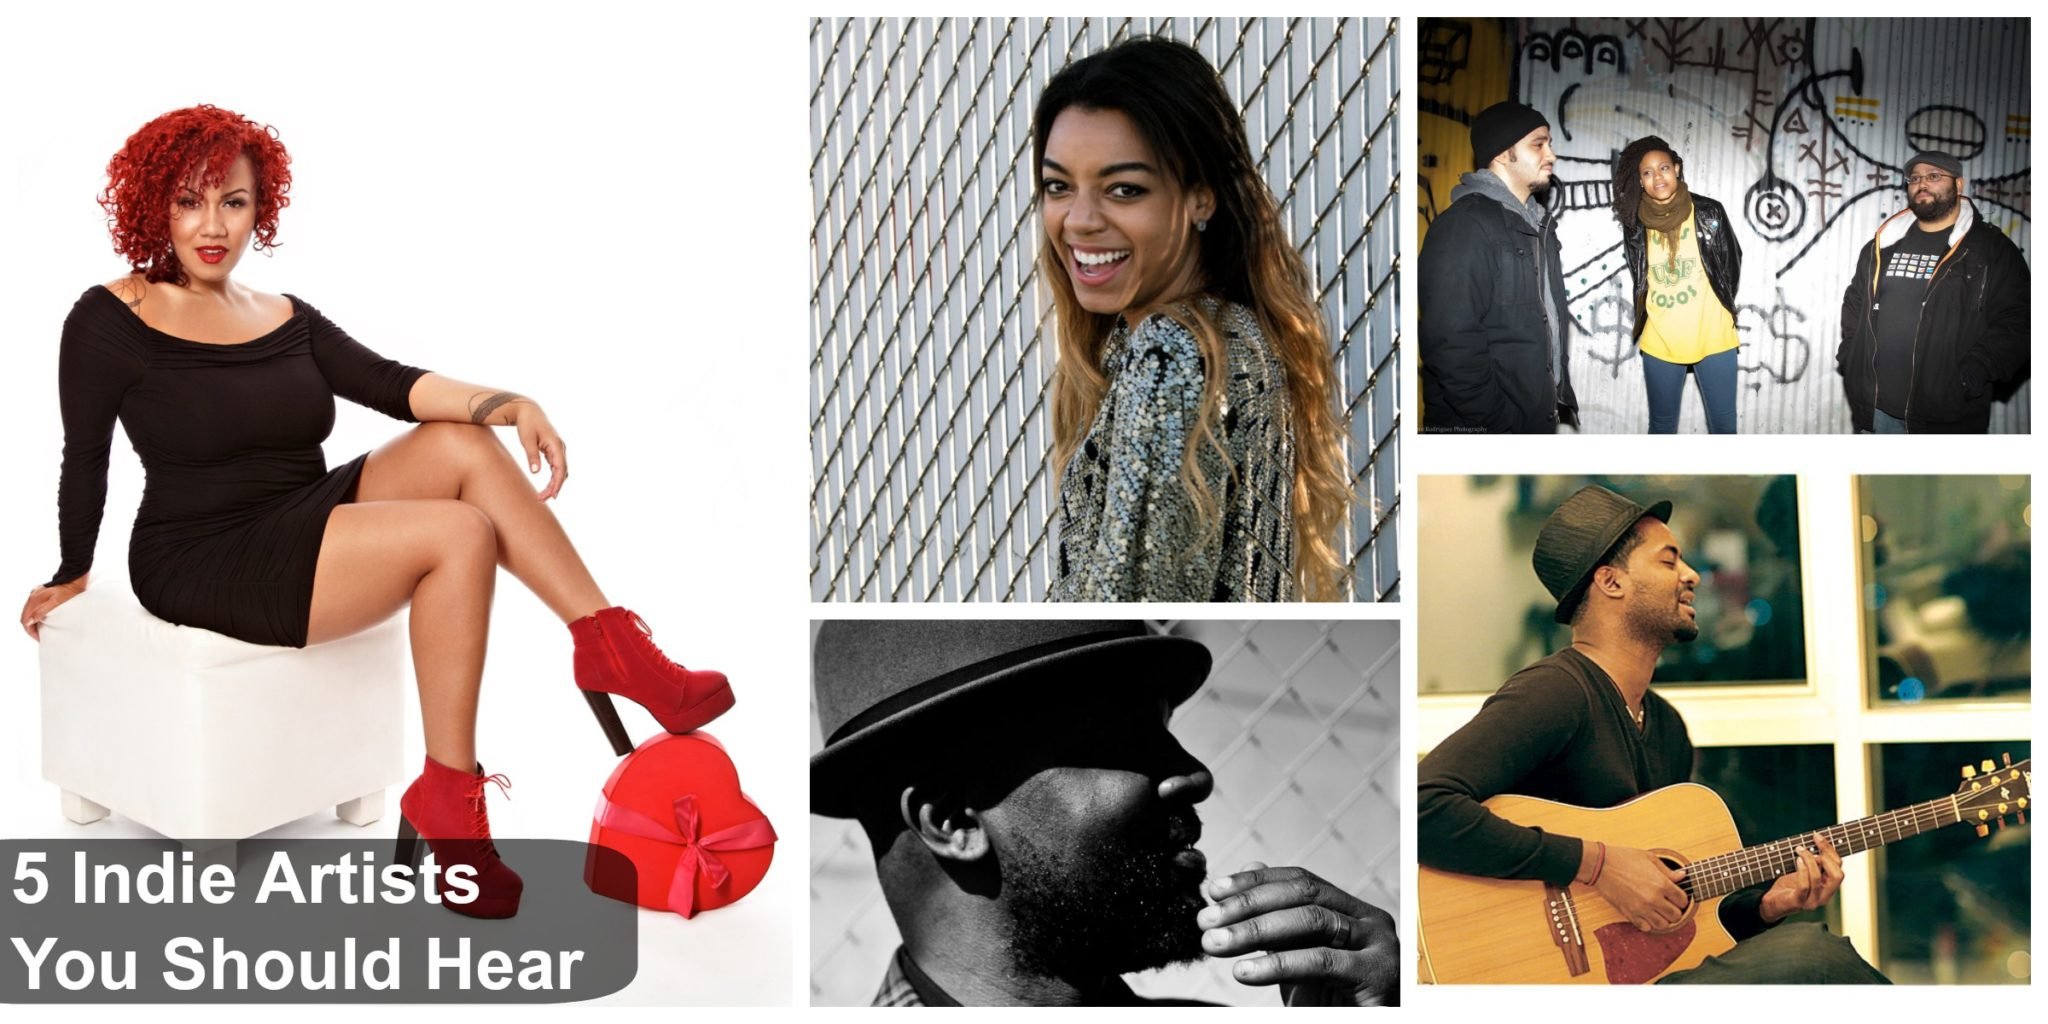 5 Indie Artists You Should Hear – March 2014